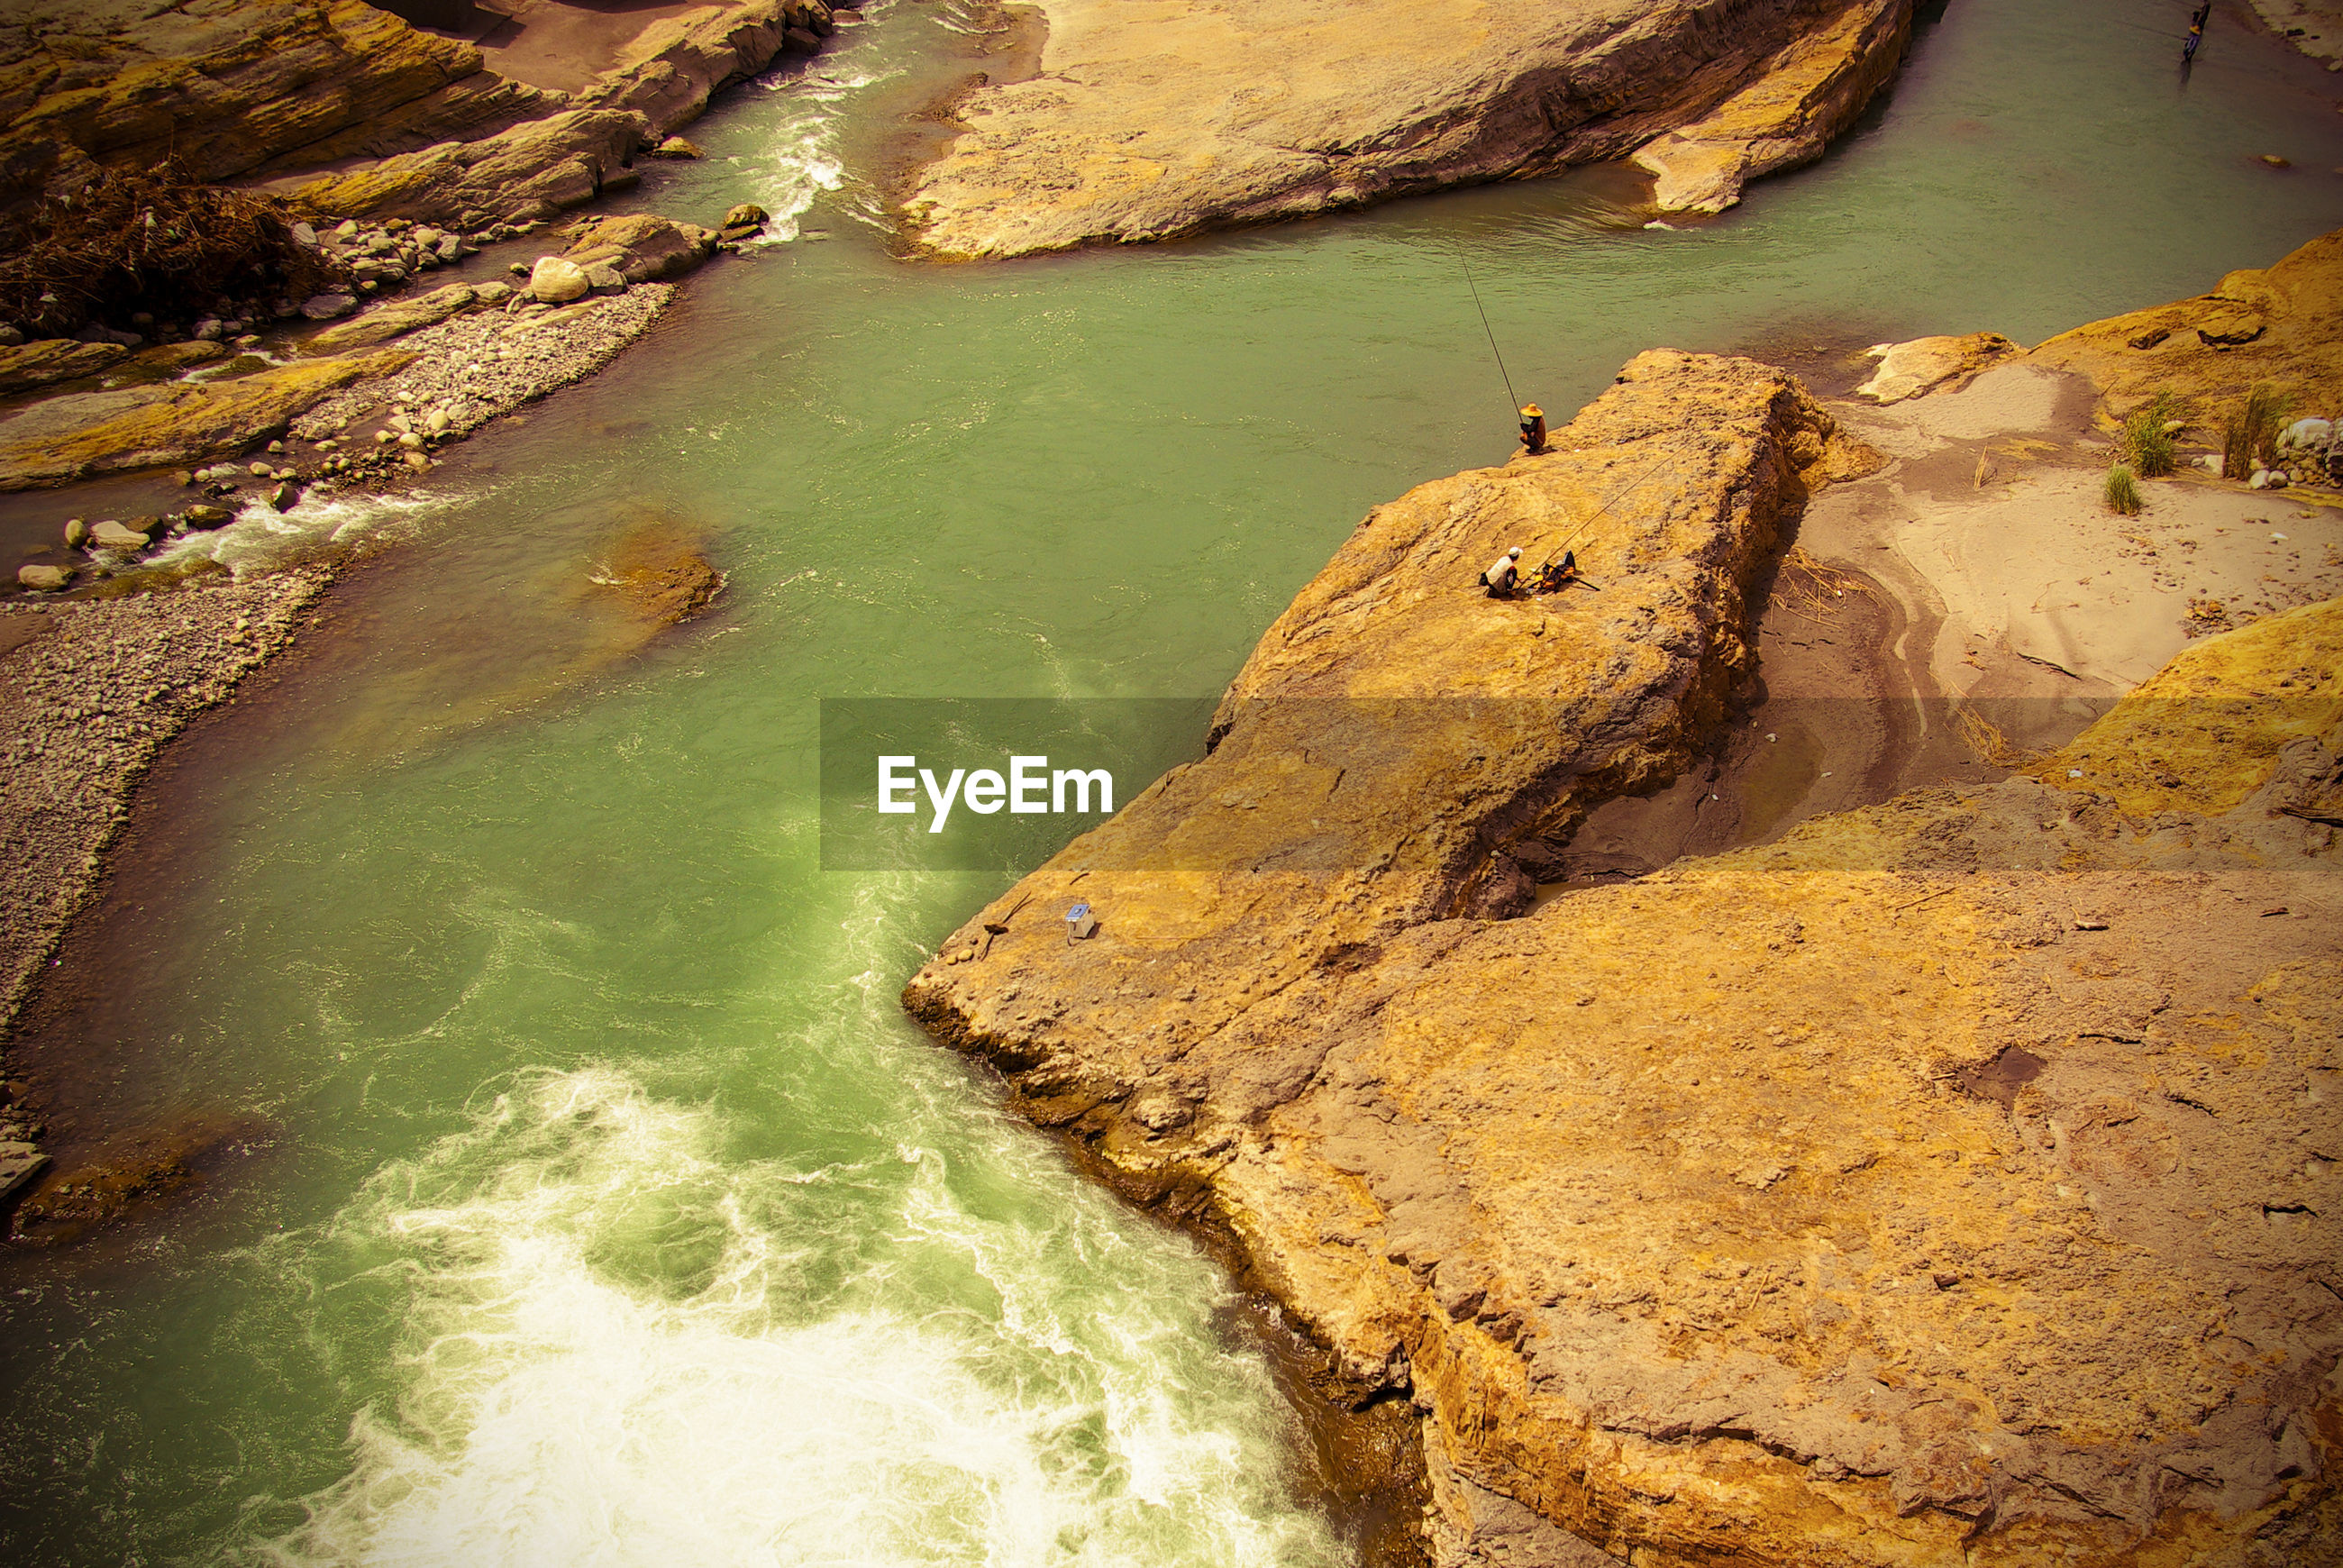 HIGH ANGLE VIEW OF ROCK FORMATIONS BY RIVER